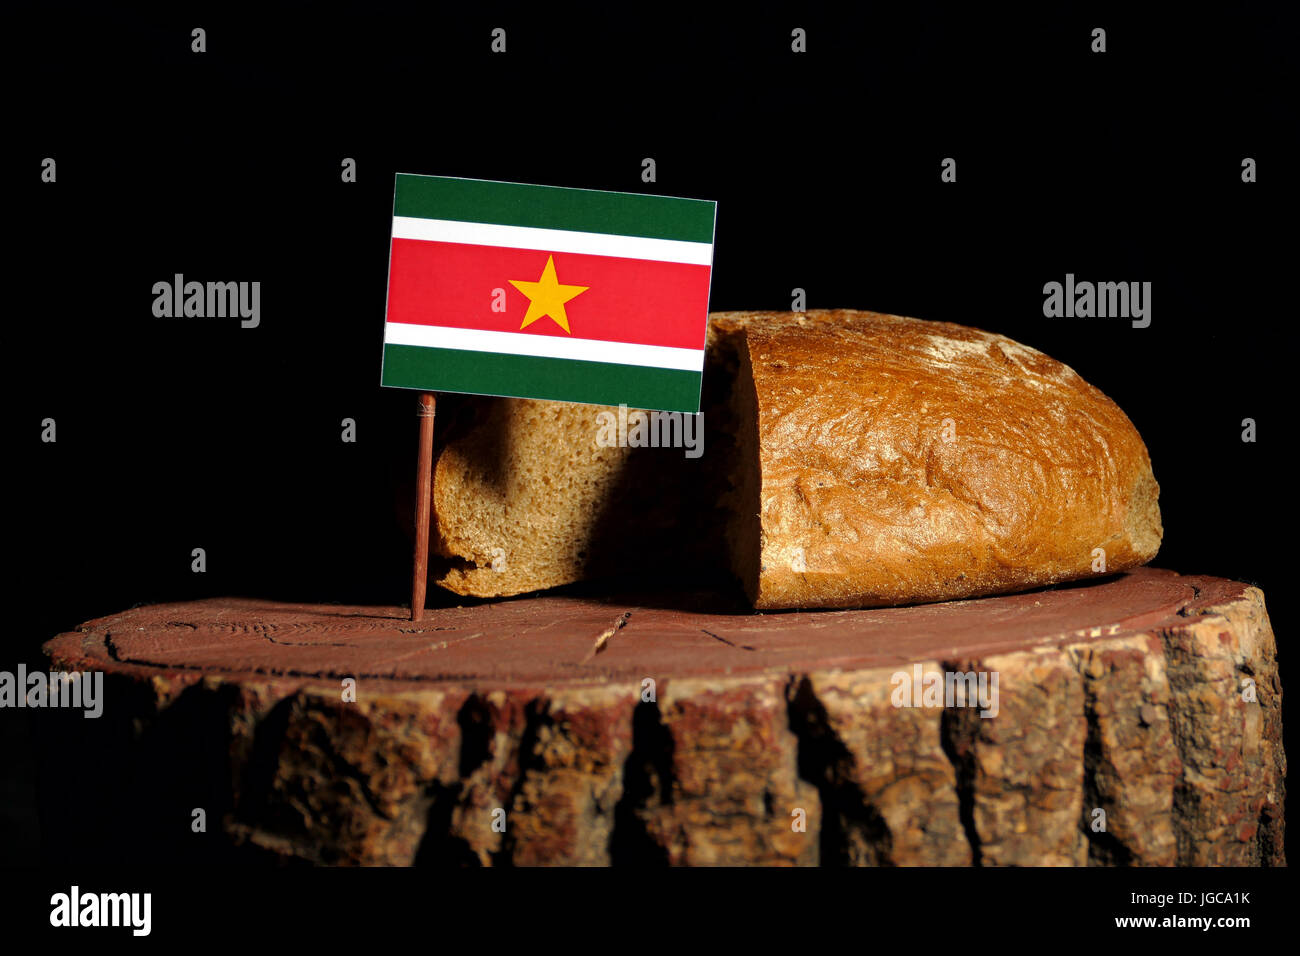 Suriname flag on a stump with bread isolated - Stock Image